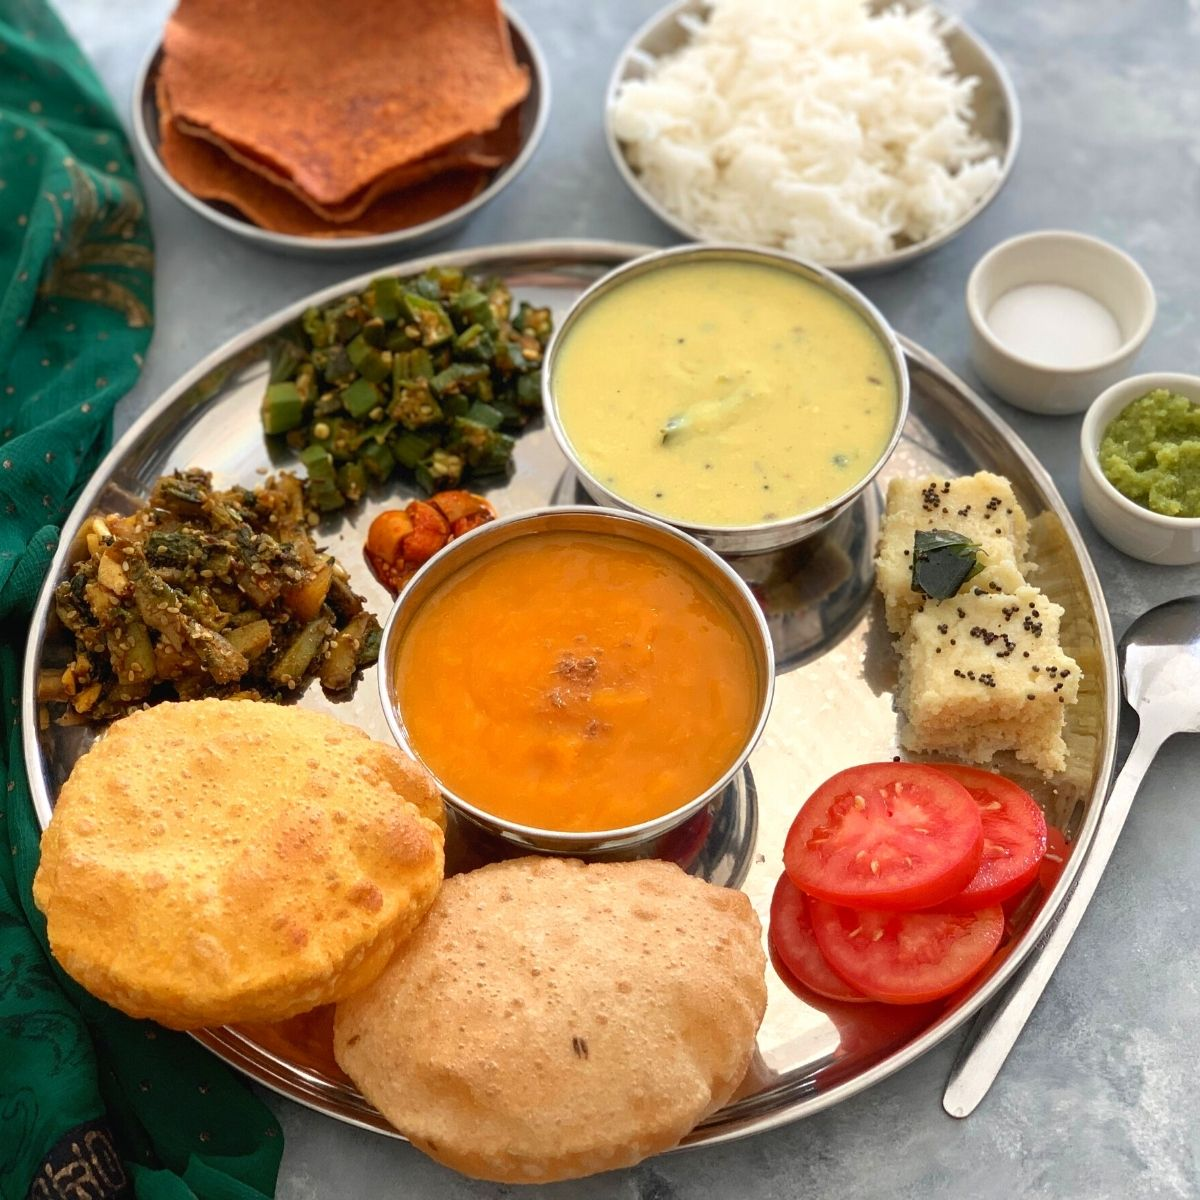 Gujarati Thali is a spectacular treat and fusion of sweet, salty, and spicy flavors all combined in a classic Indian Regional thali.